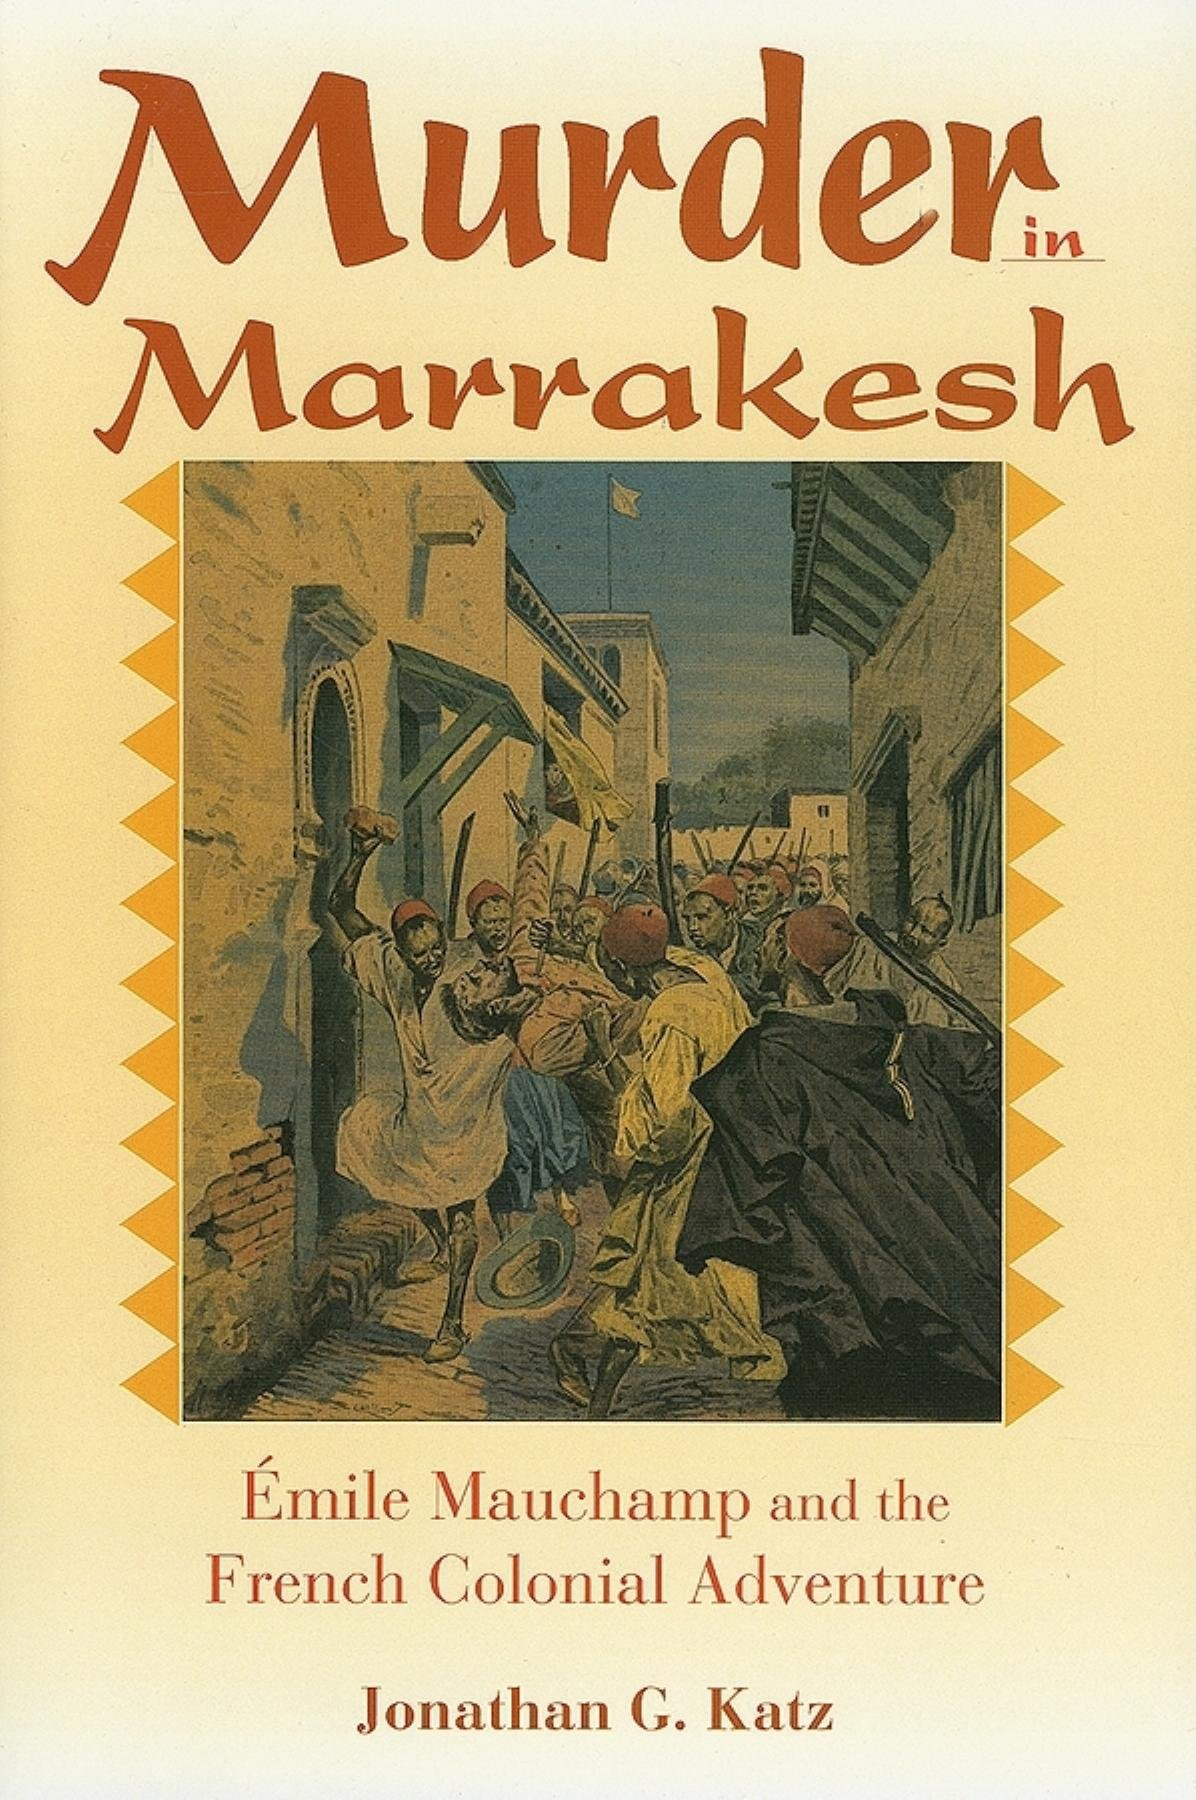 Murder in Marrakesh: Émile Mauchamp and the French Colonial Adventure  Hardcover – October 24, 2006